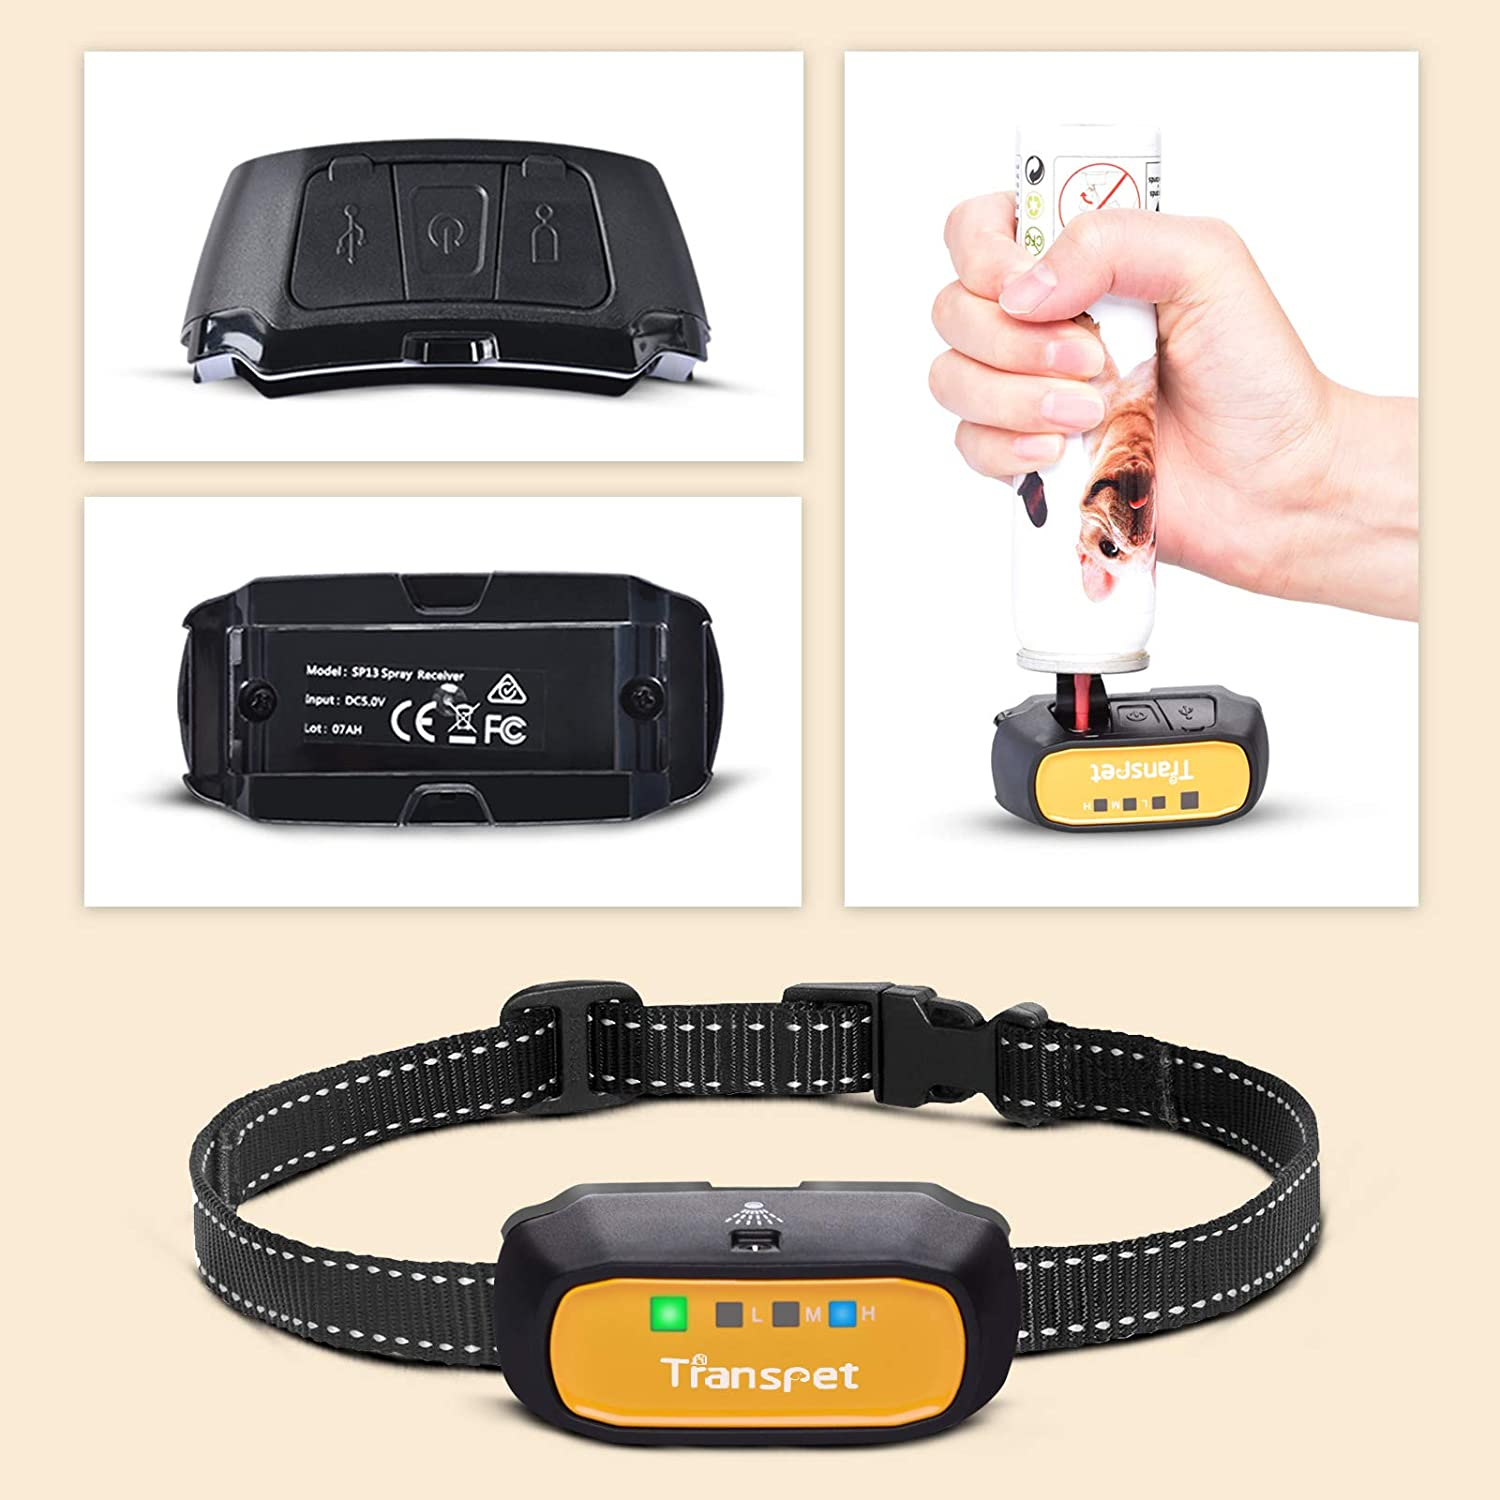 not Include Citronella Spray 150 Meters Range Spray Dog Training Collar with Harmless Remote//Auto Stop Barking Device Transpet Anti Barking Dog Collars USB Rechargeable